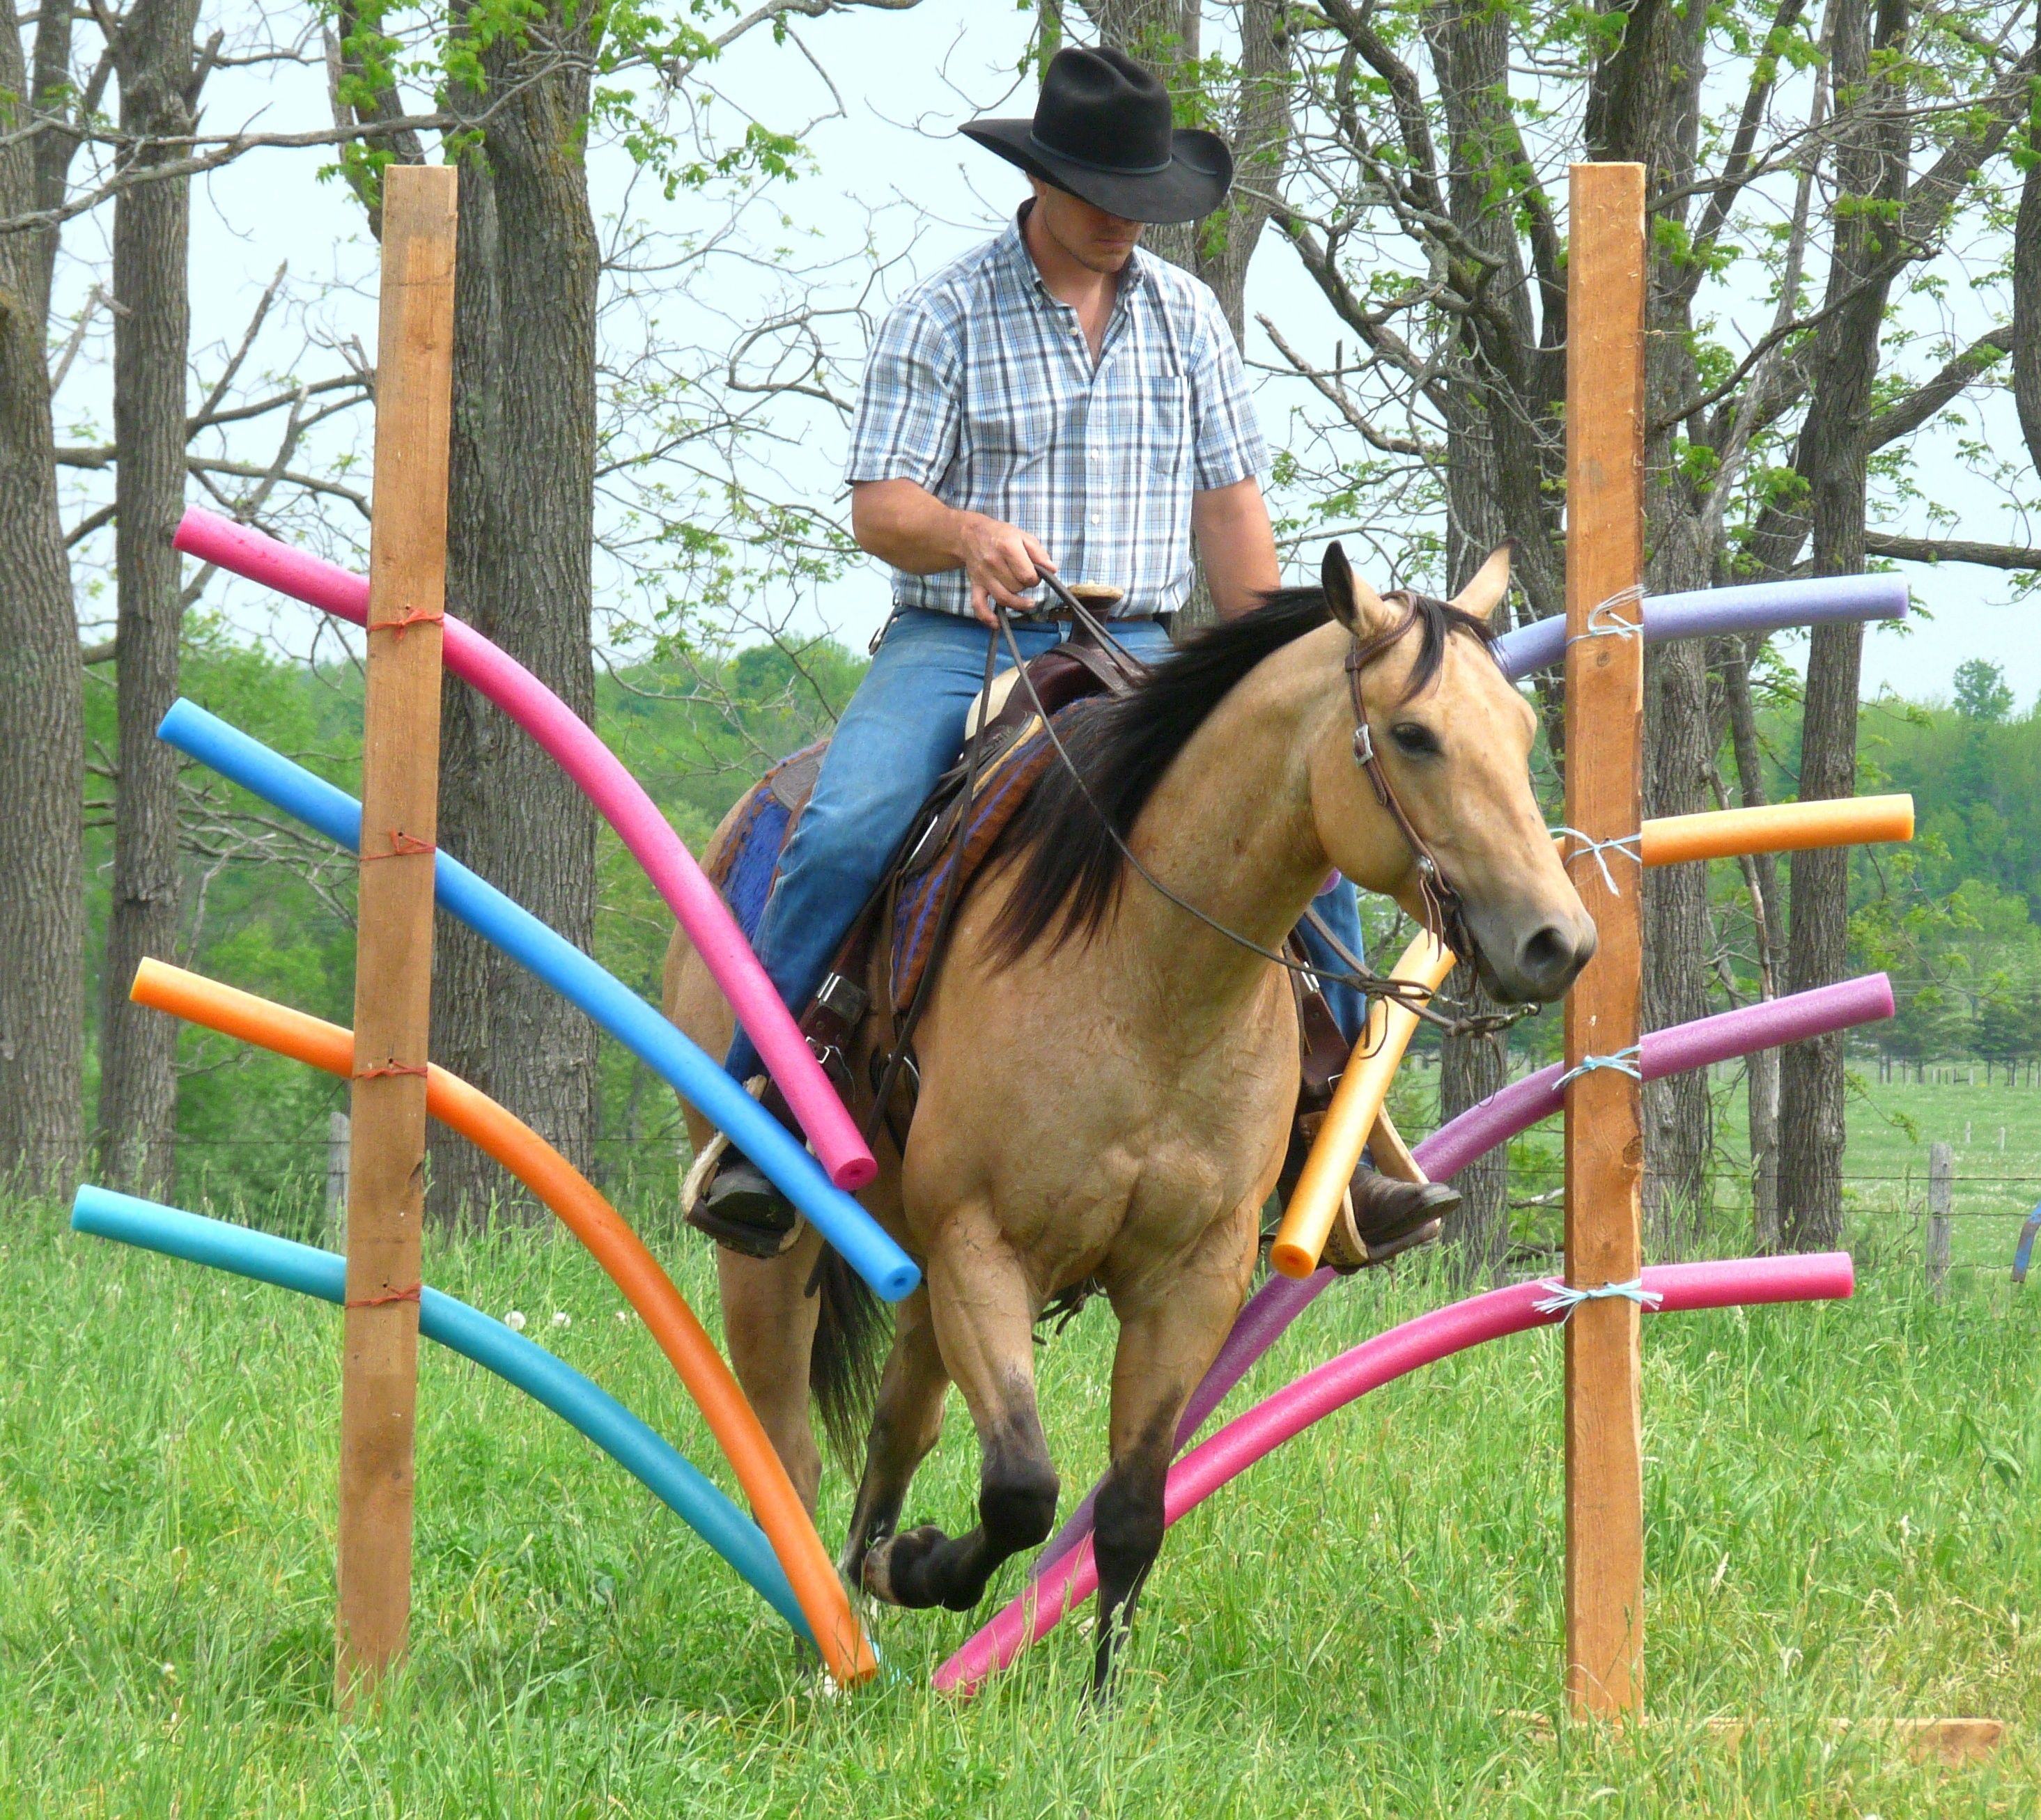 Diy Horse Training Aid (pool Noodles) I Want To Make This In The Summer